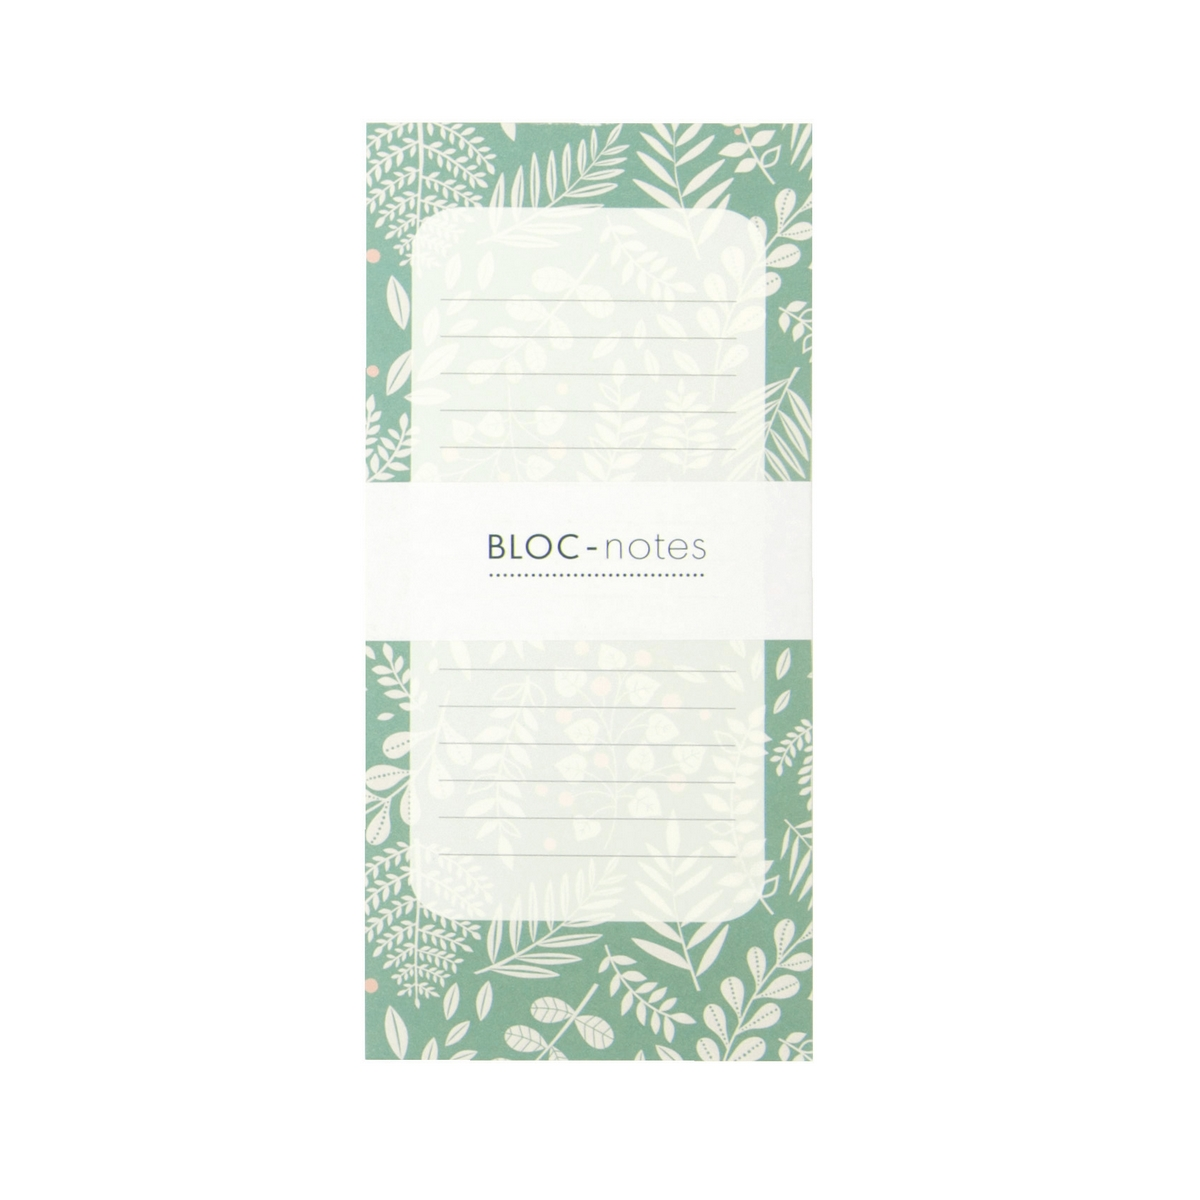 Bloc-notes buisson